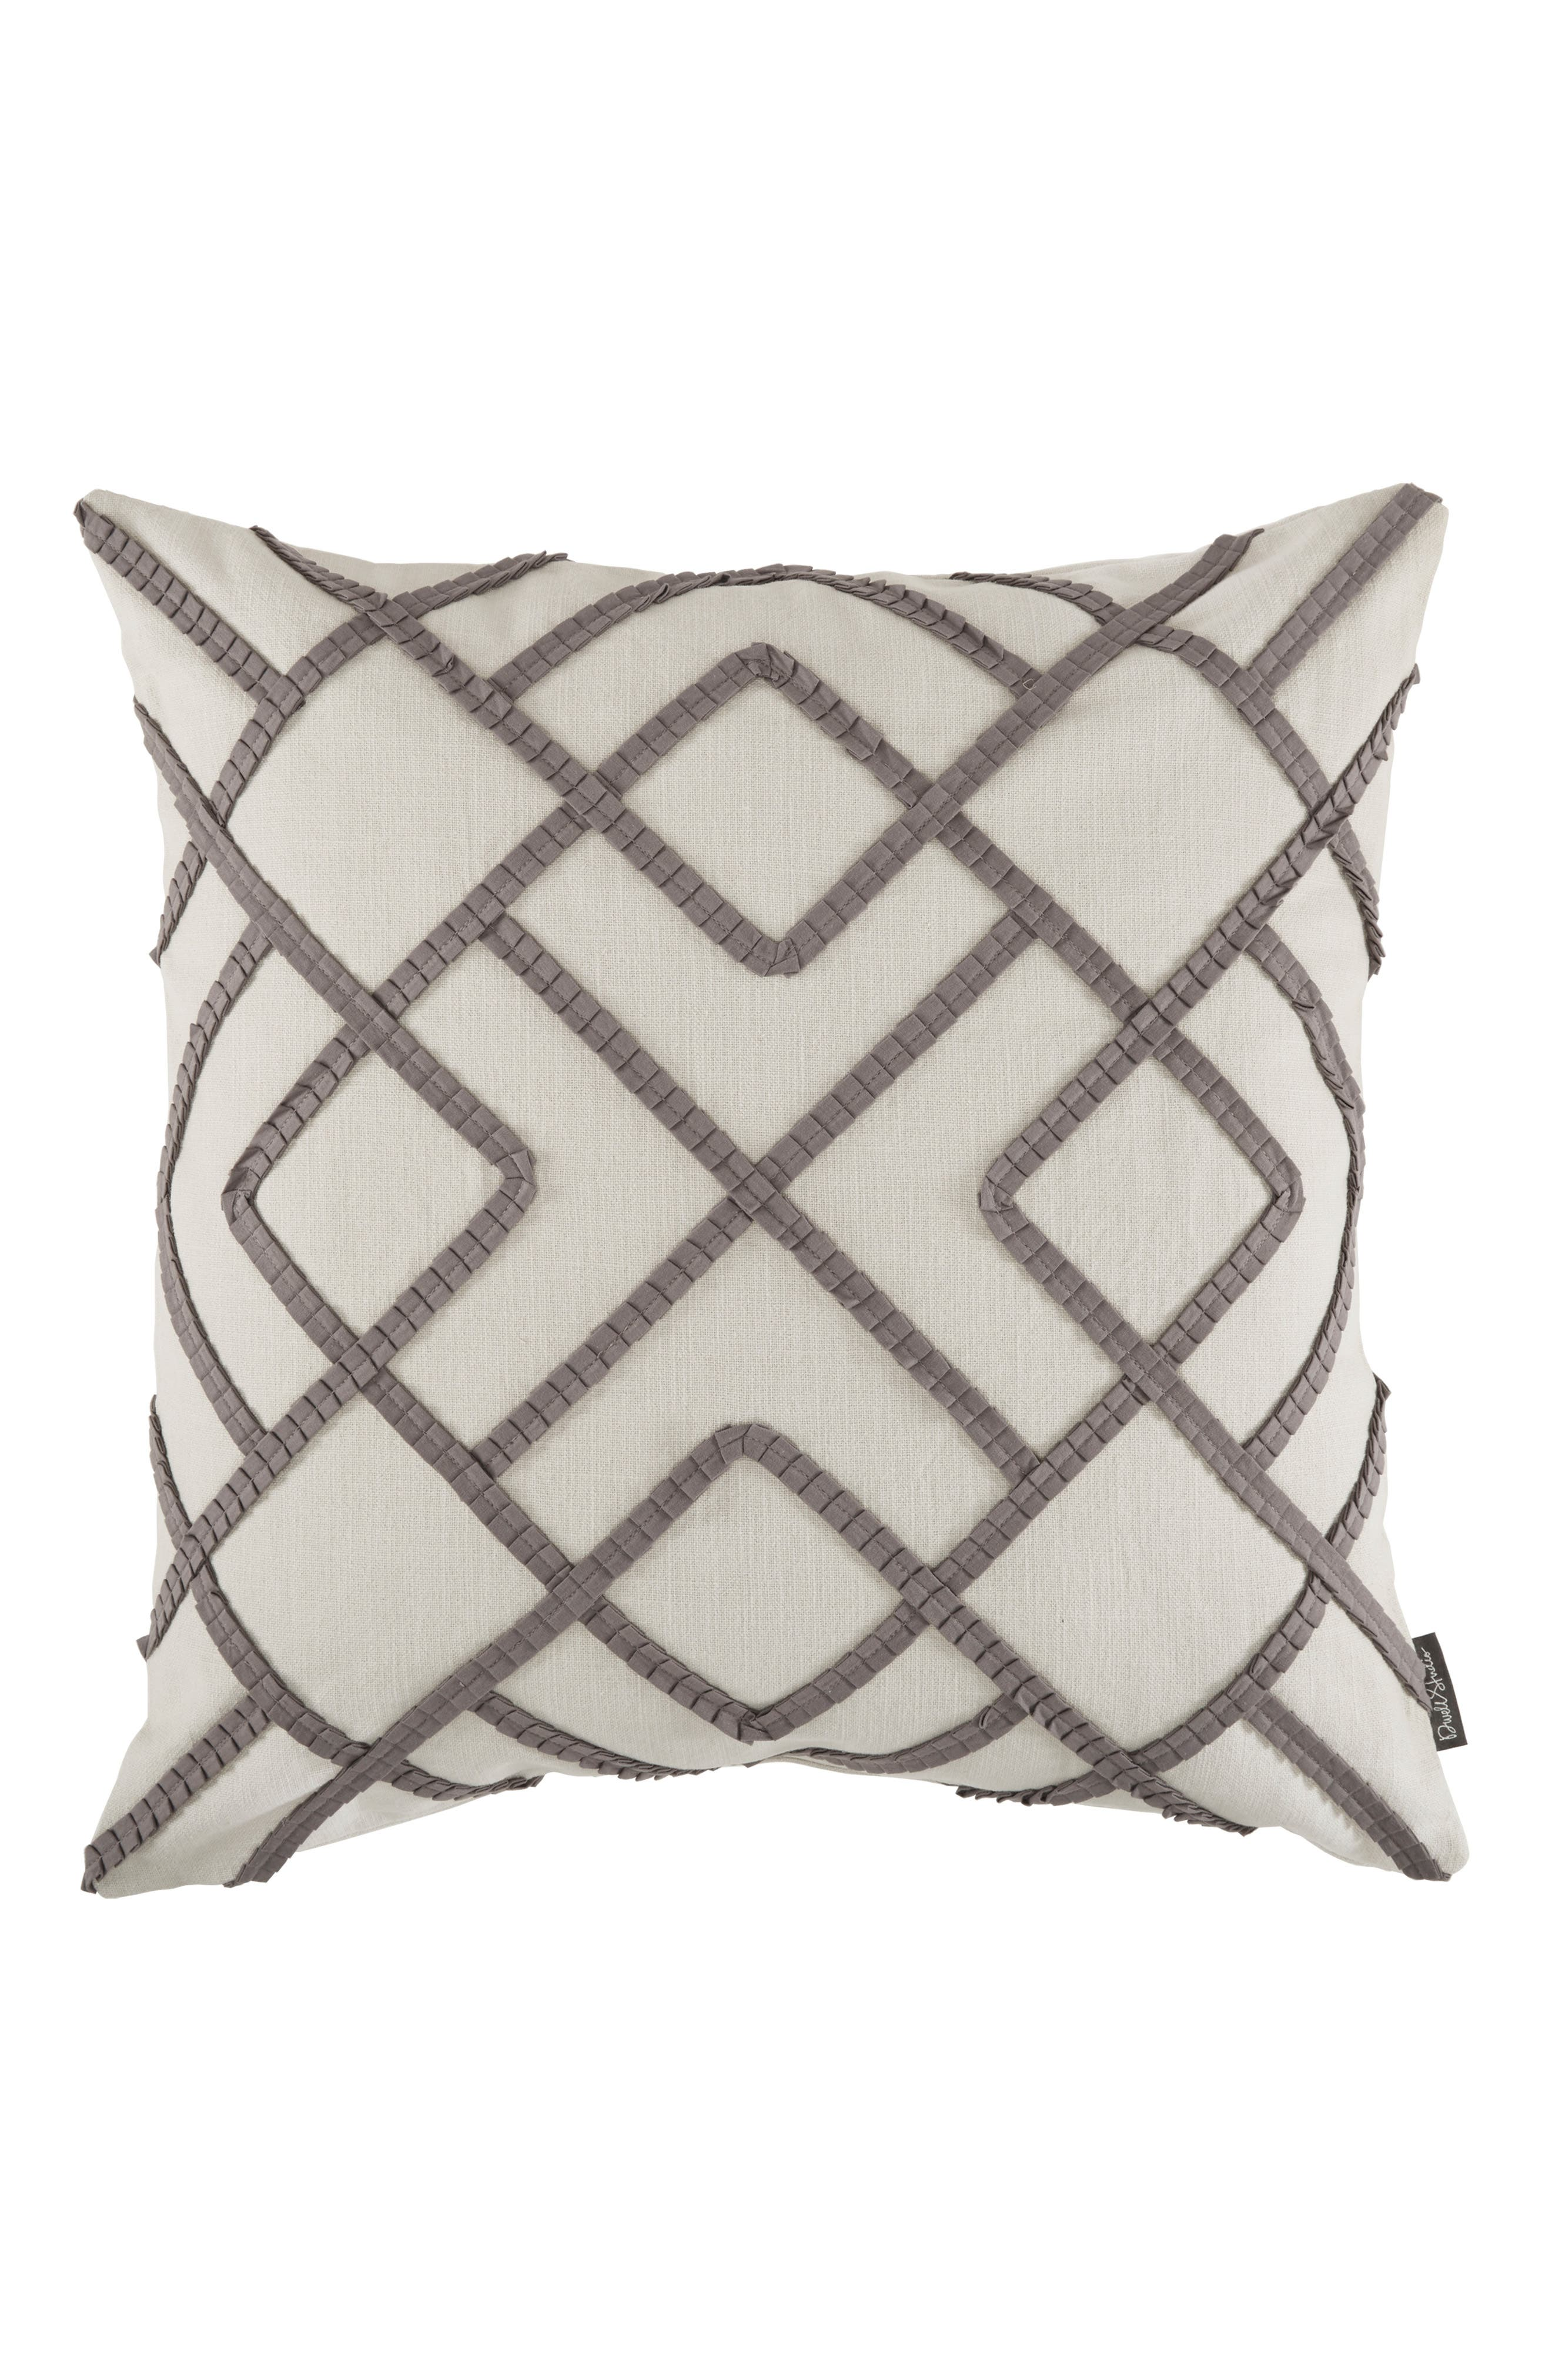 Windsor Accent Pillow,                         Main,                         color, 020